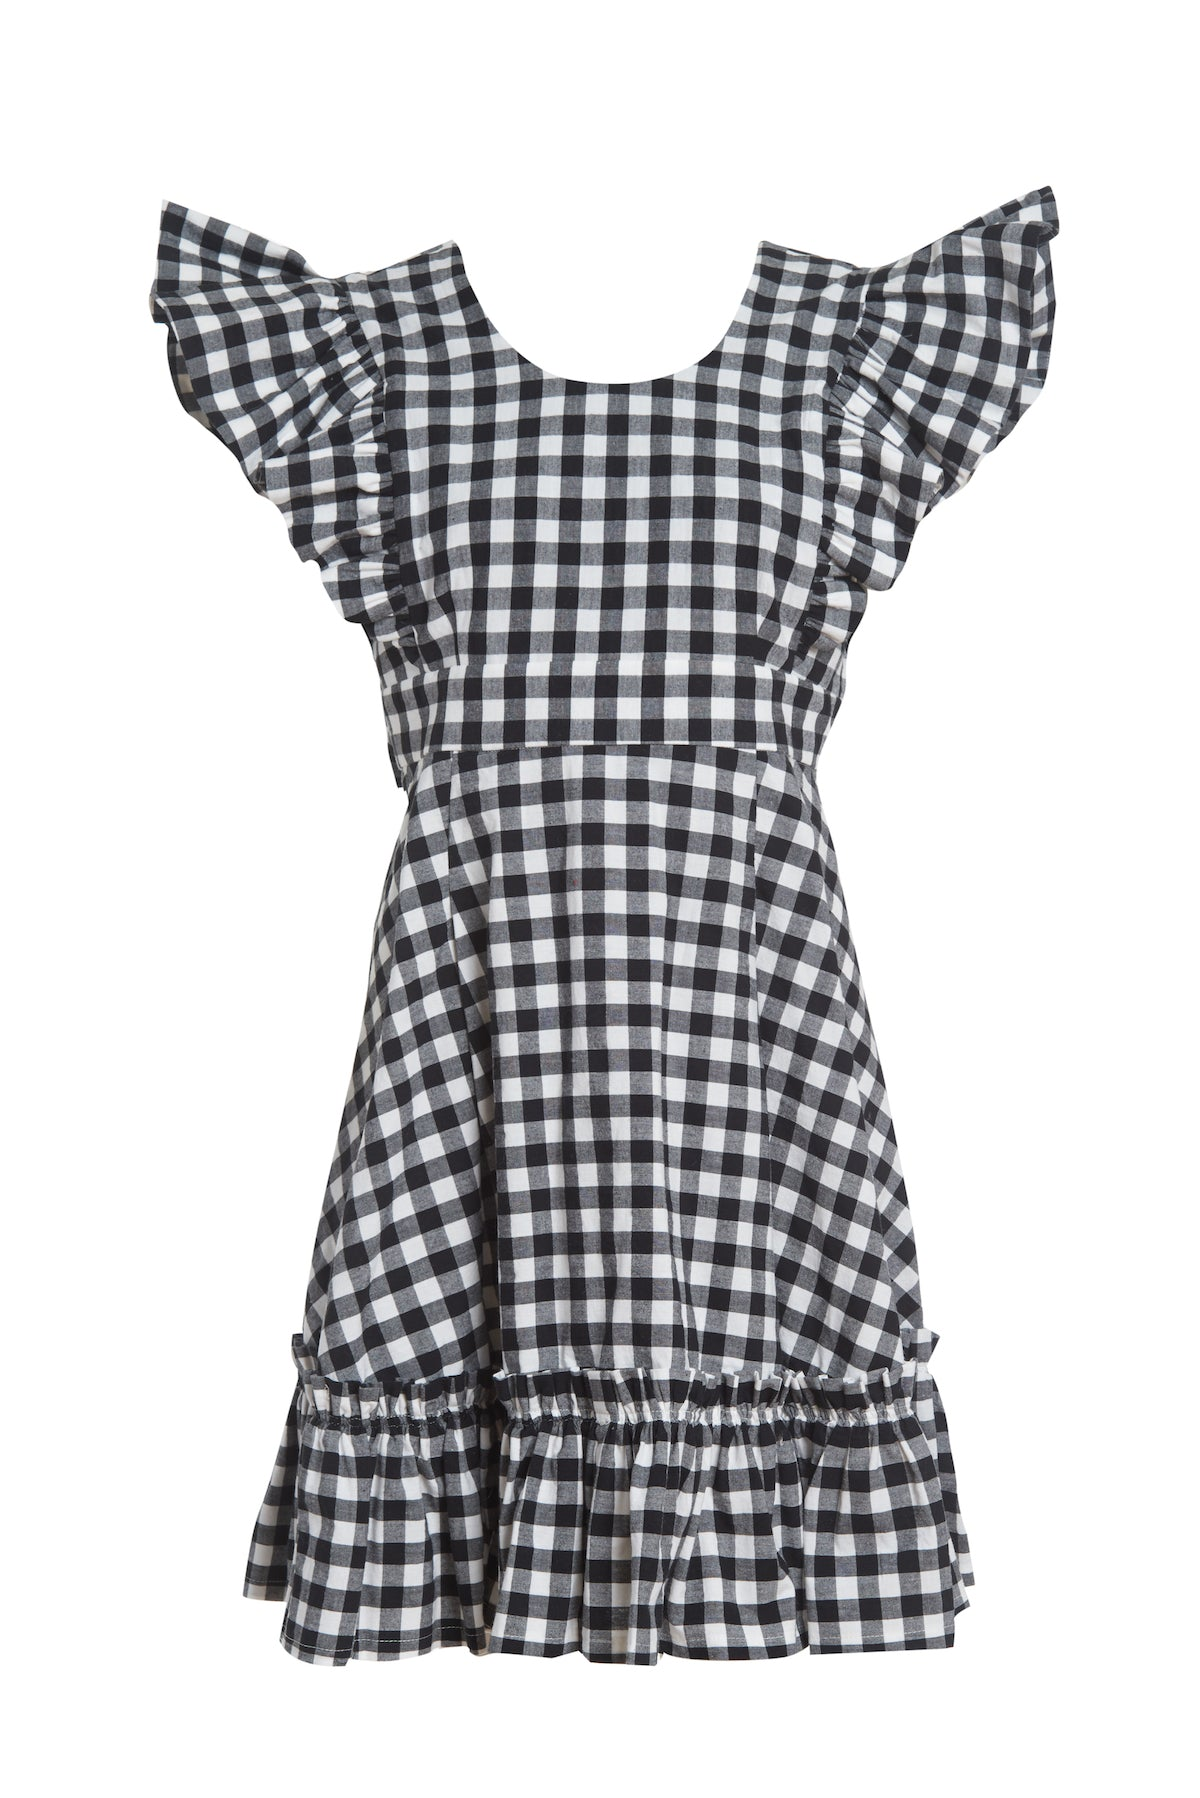 Quinoa Dress Black Gingham